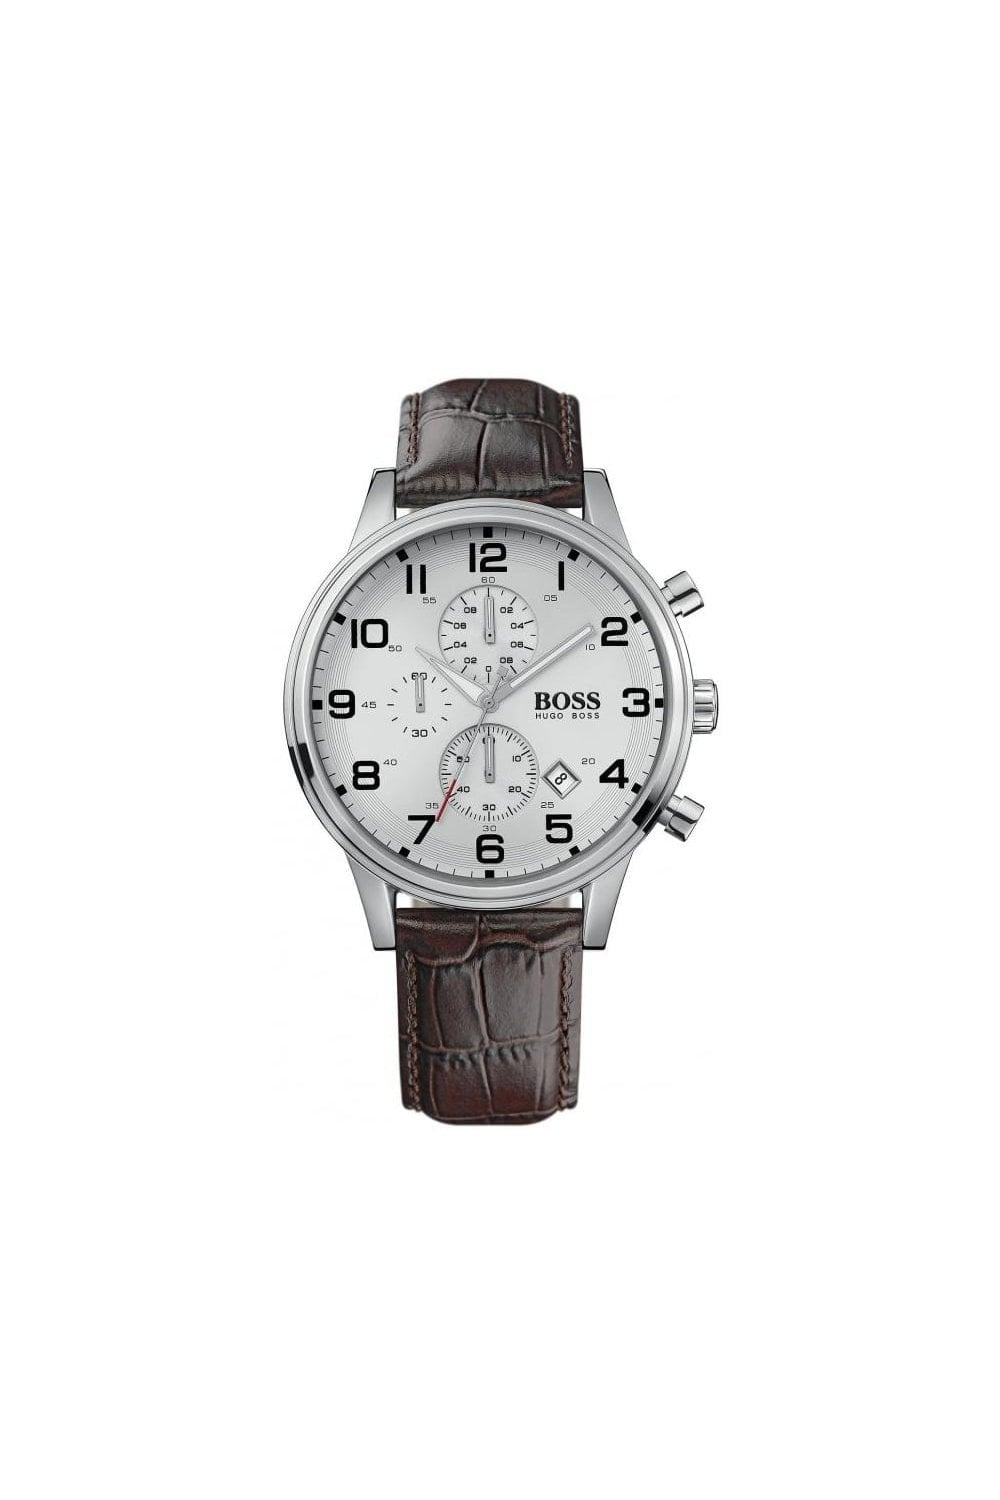 https://www.the-watch-studio.com/images/hugo-boss-hb-1512447-mens-aeroliner-watch-p220-669_image.jpg